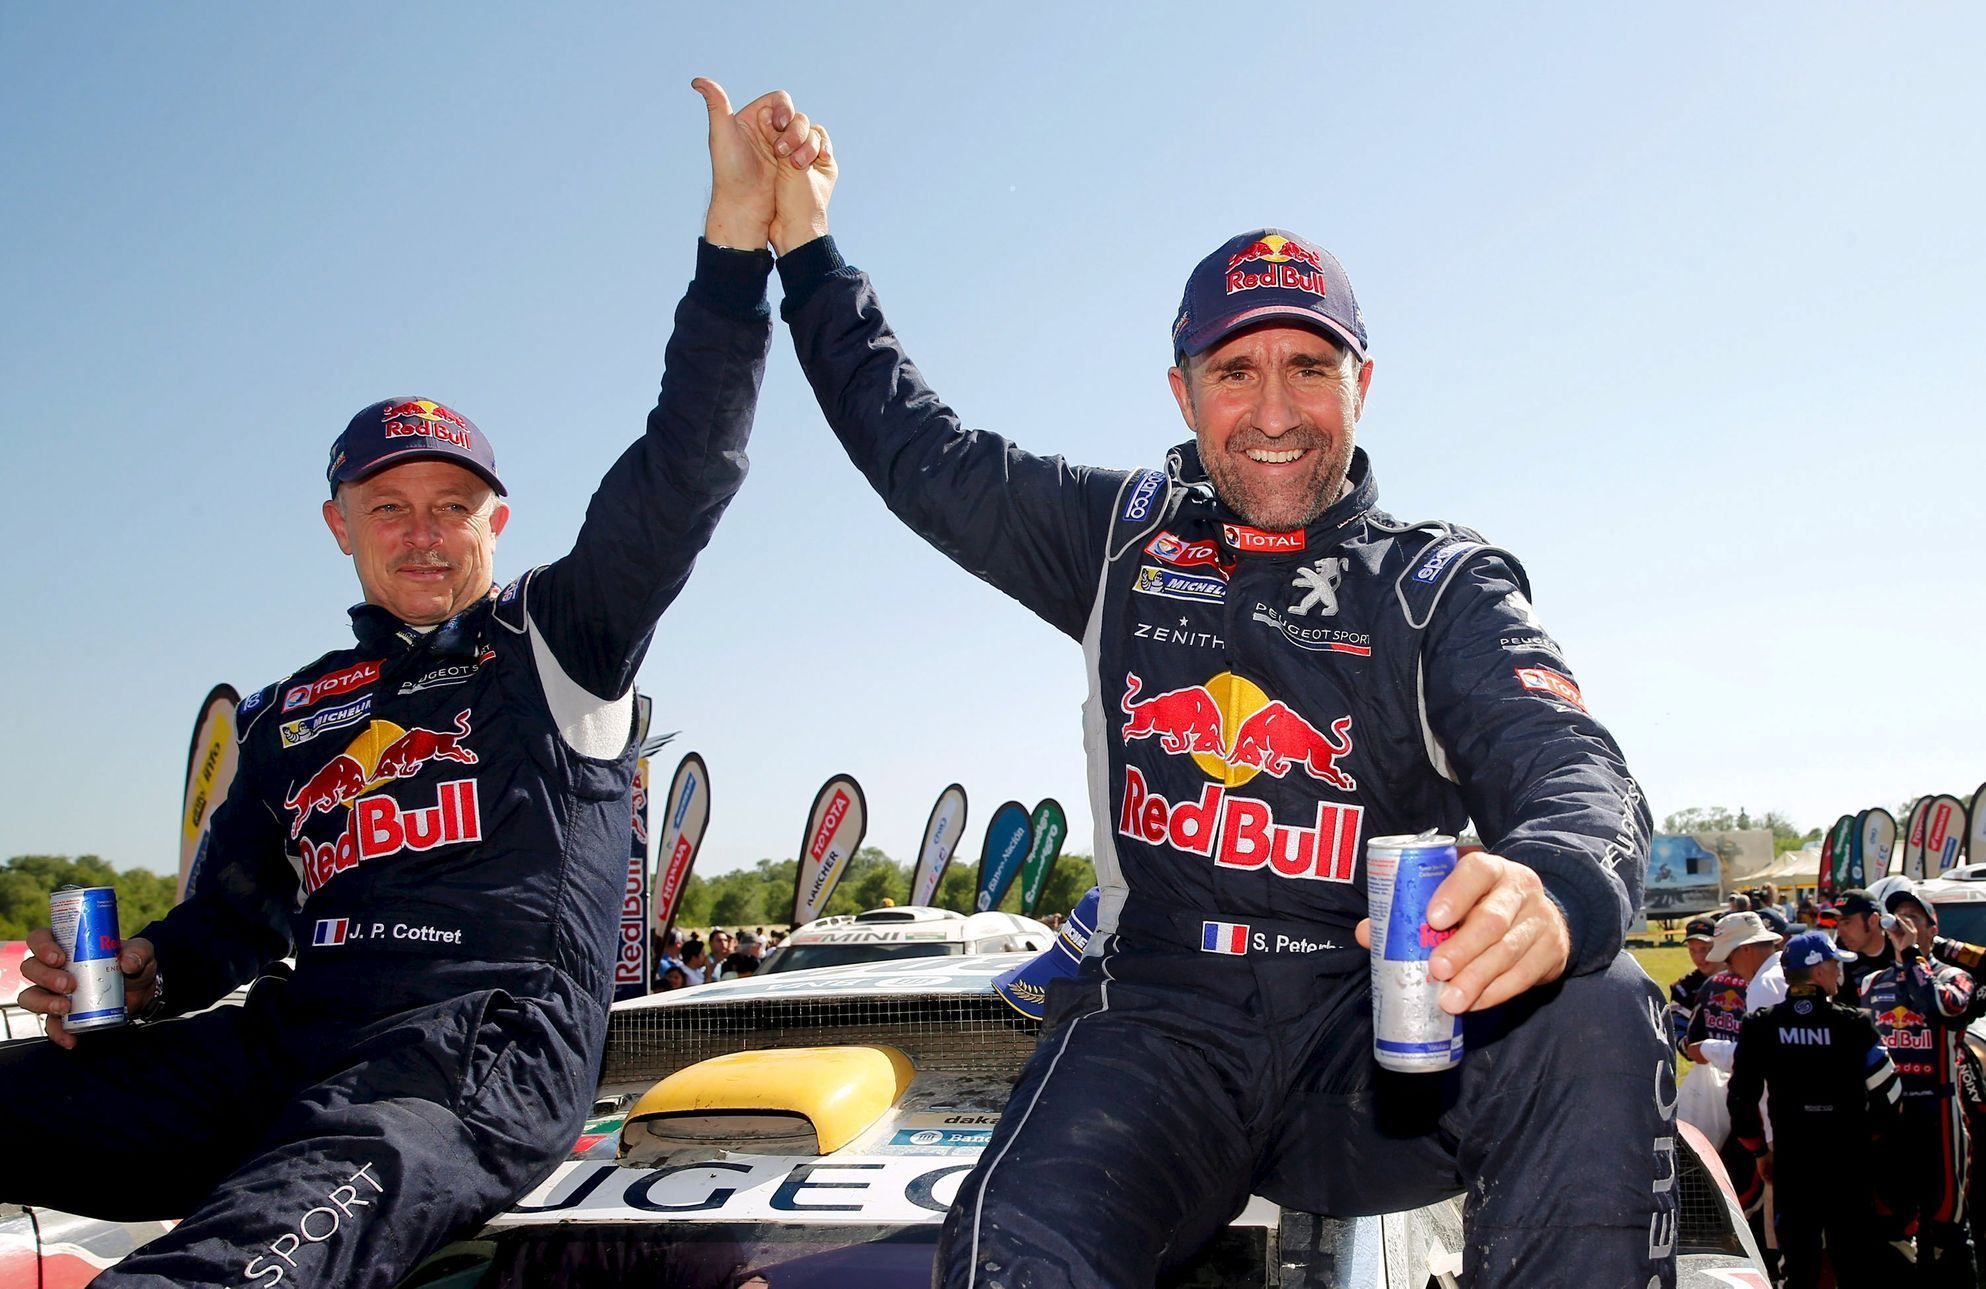 Peugeot driver Peterhansel of France and co-pilot Cottret of France react at the end of the 13th and final stage of the Dakar Rally 2016 in Cordoba province